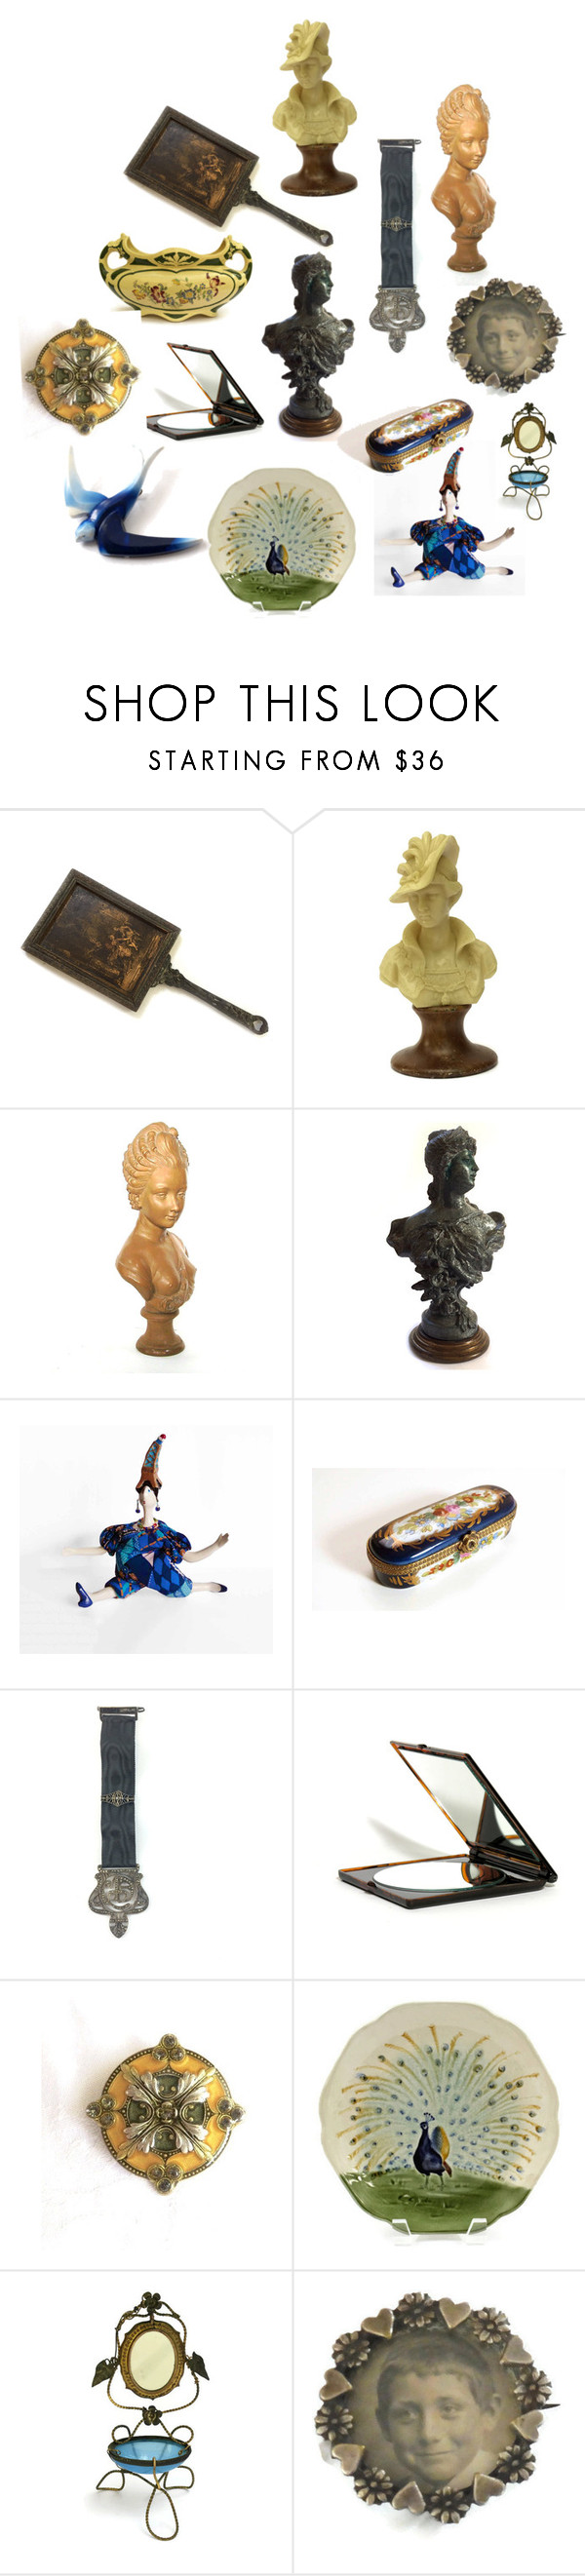 French Decor by patack on Polyvore featuring Epoque, Hun Rick Owens, ETUÍ, Millet and vintage